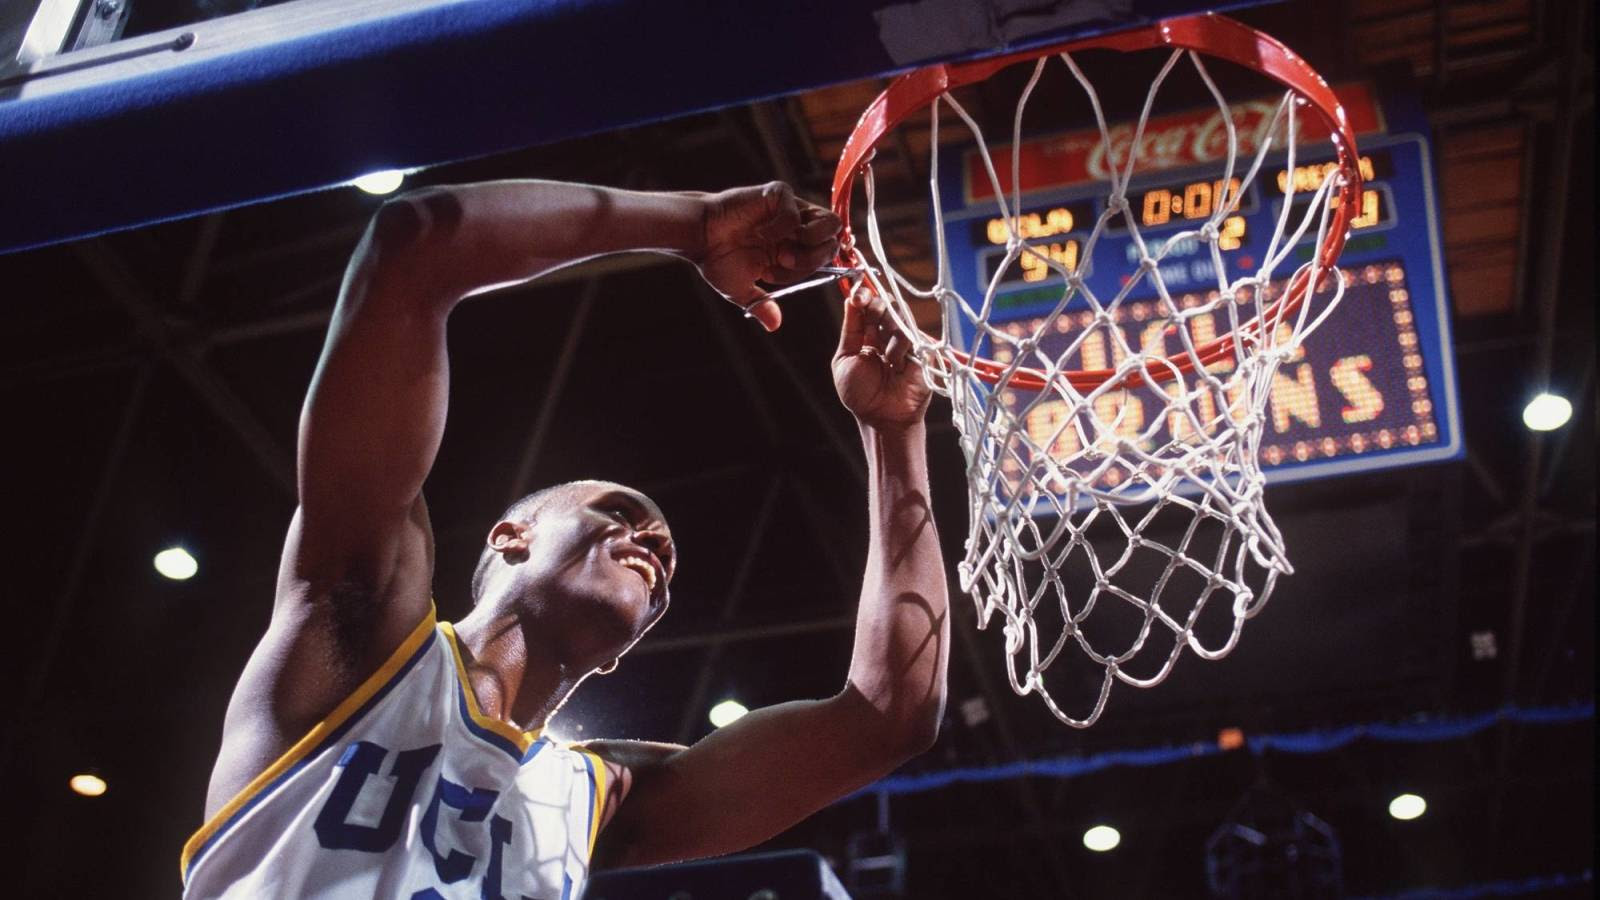 March Sadness 25 Years After His Shining Moment Tyus Edney